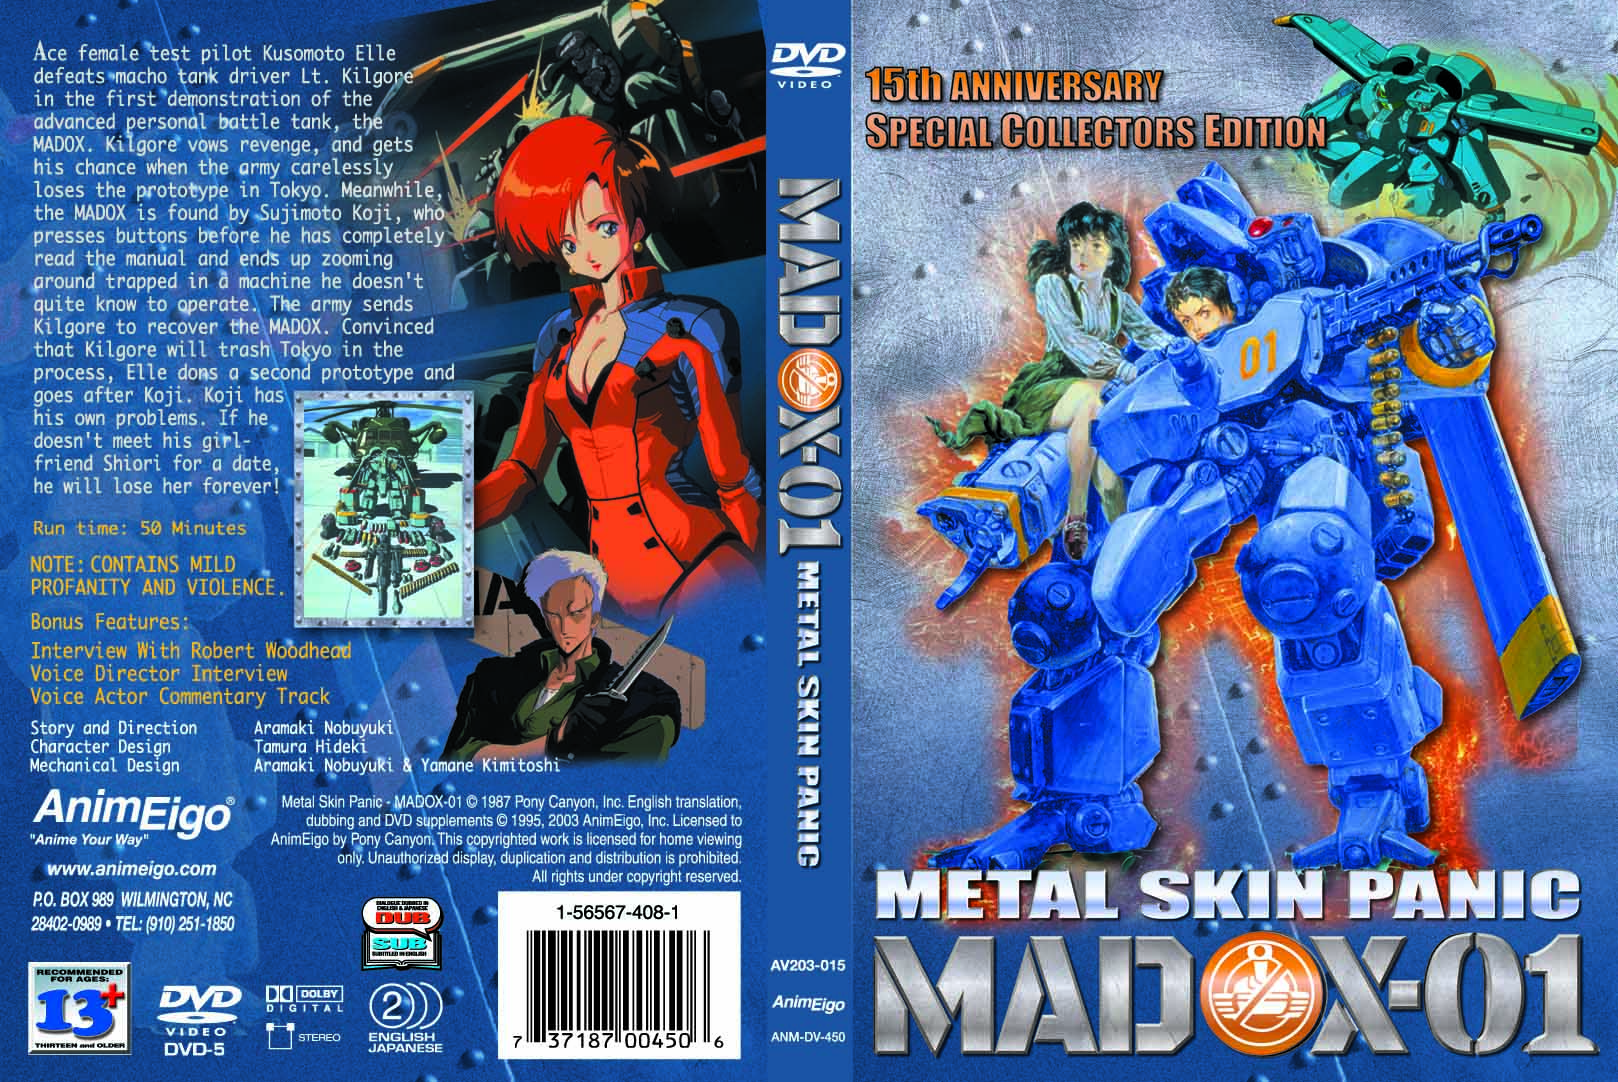 An image of the DVD slip cover for the AnimEigo DVD release of the 1987 Metal Skin Panic MADOX-01 original animation video, featuring the main characters and the titular suit of mecha powered armor.